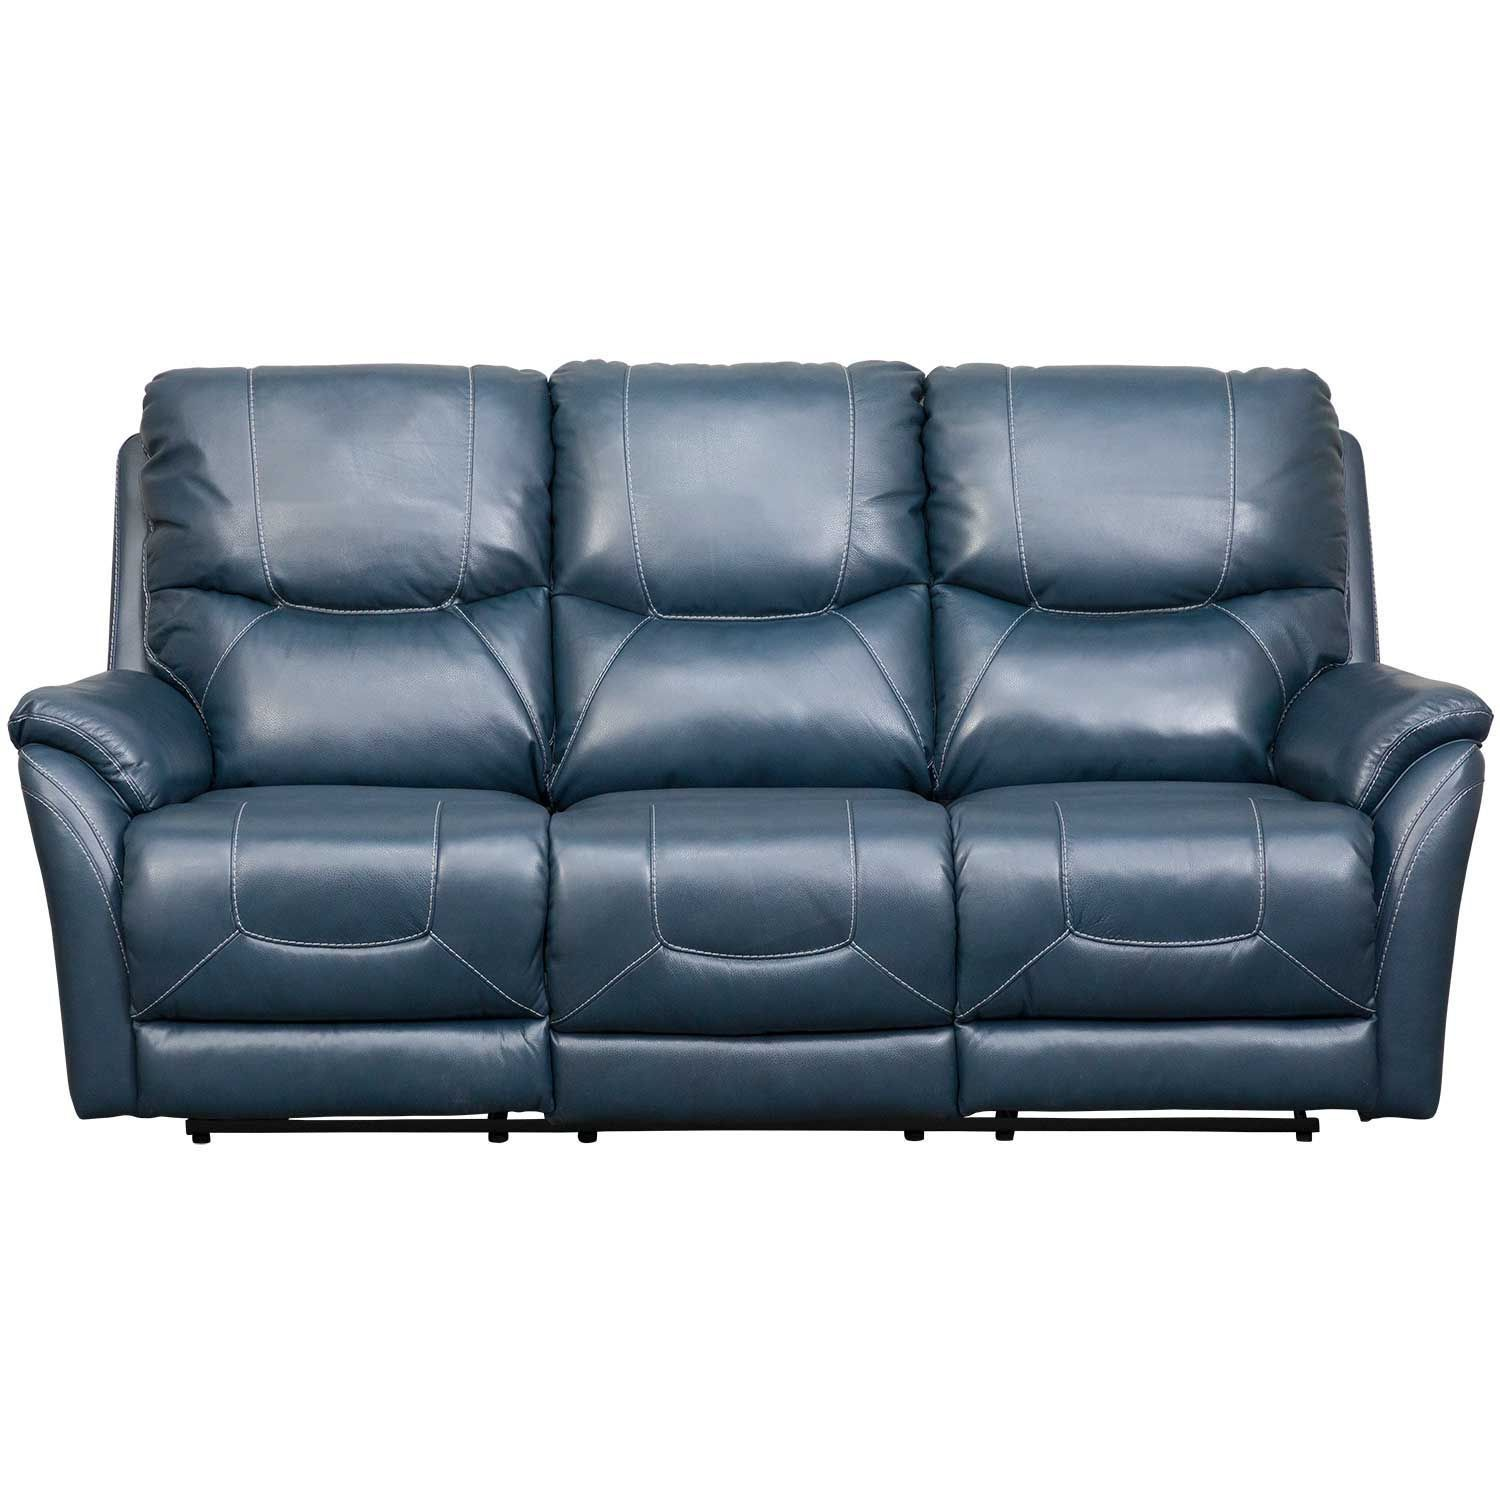 Dellington Marine Power Reclining Sofa With Adjustable Headrest And Lumbar In 2020 Power Recliners Reclining Sofa Recliner